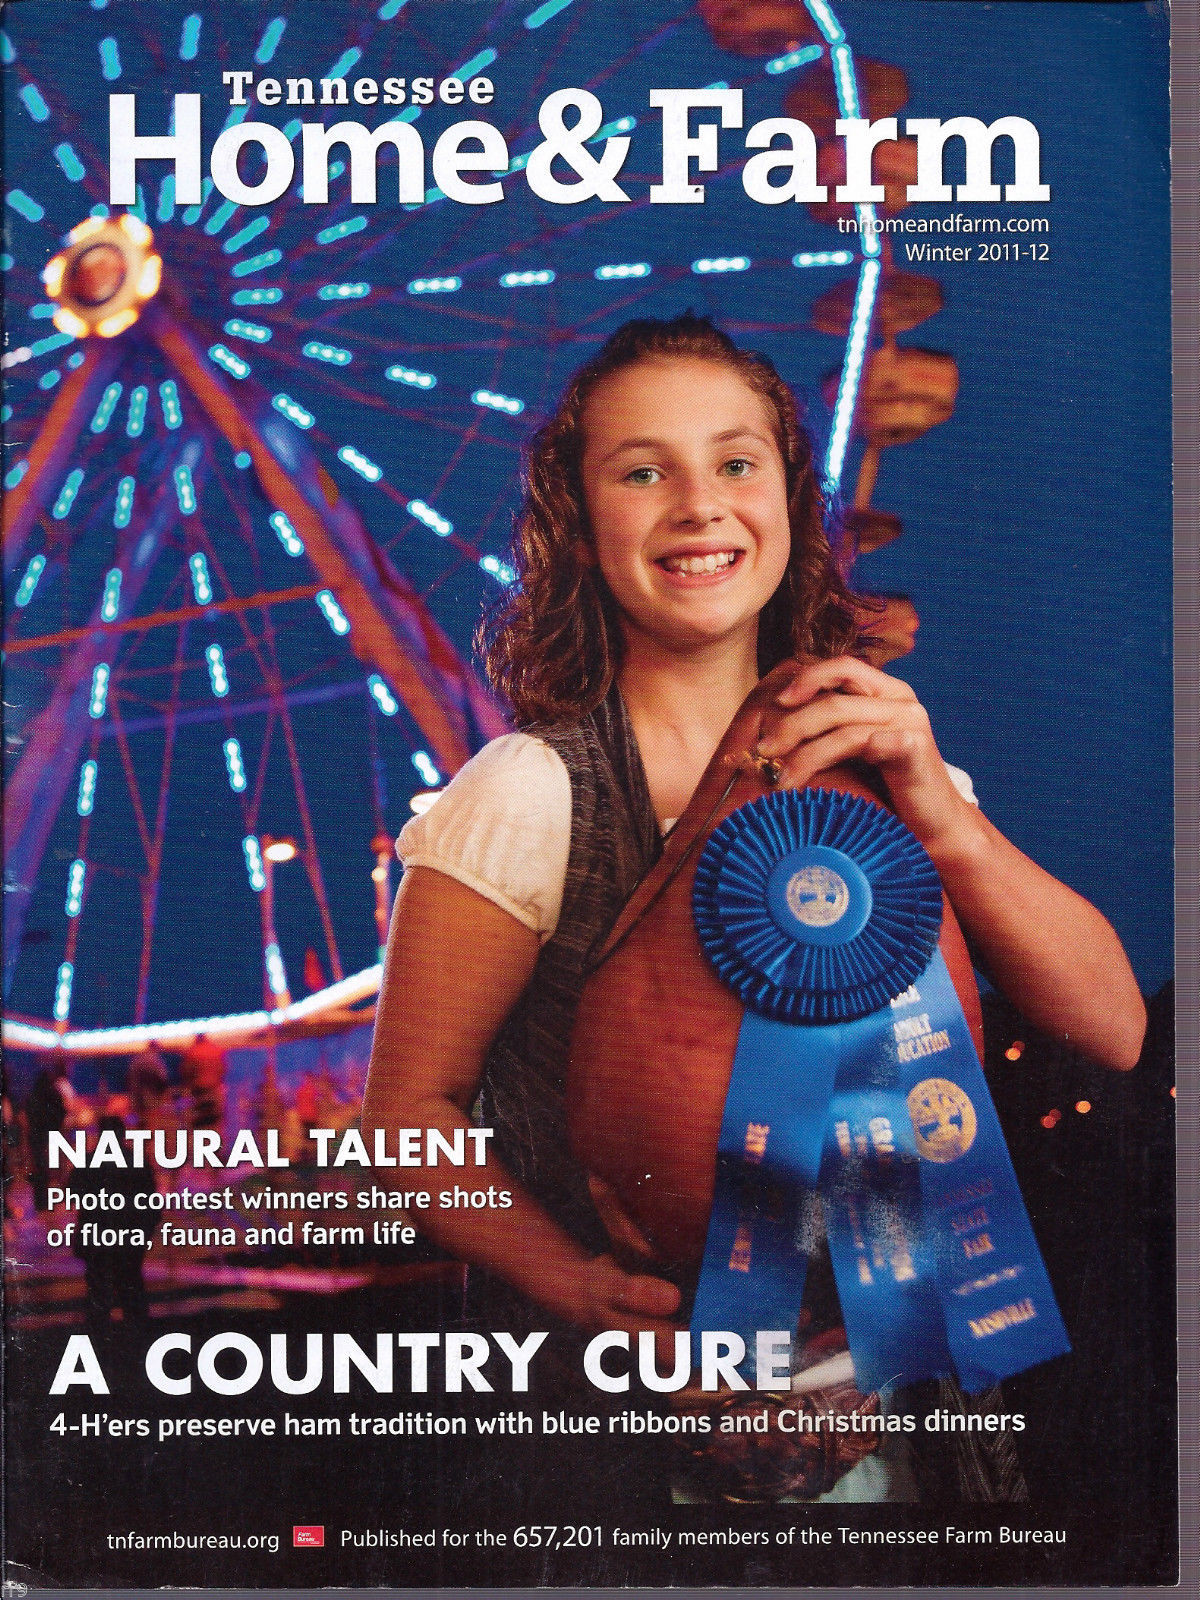 Primary image for Tennessee Home & Farm Magazine Winter 2011-12 A Country Cure